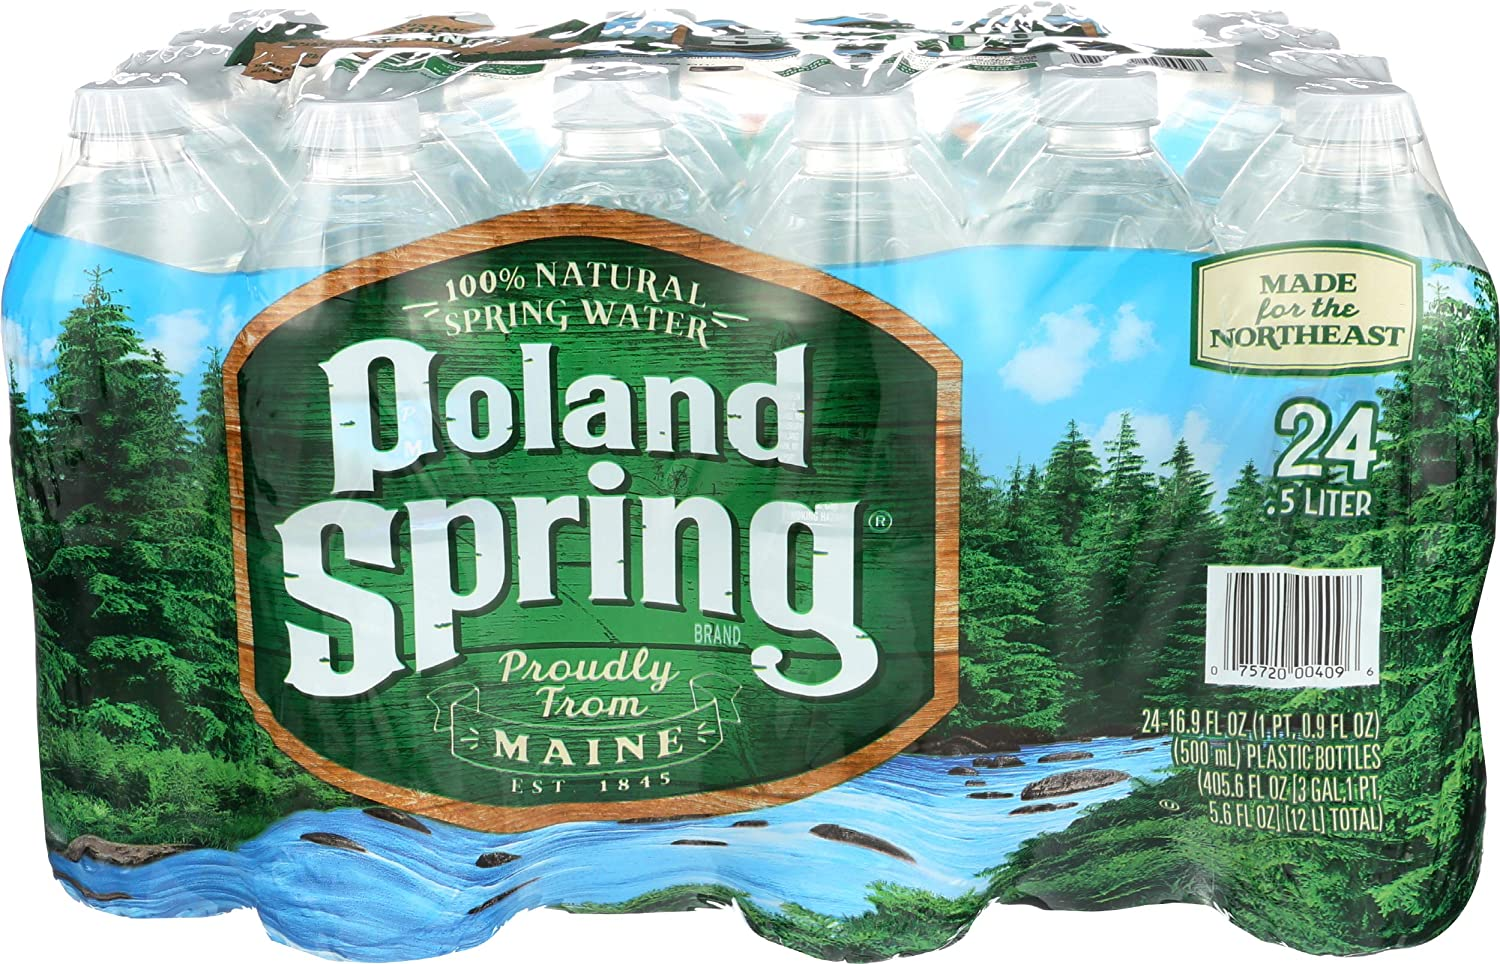 POLAND SPRING (24 Pack) 100% Natural Spring Water, 16.9-ounce plastic bottles